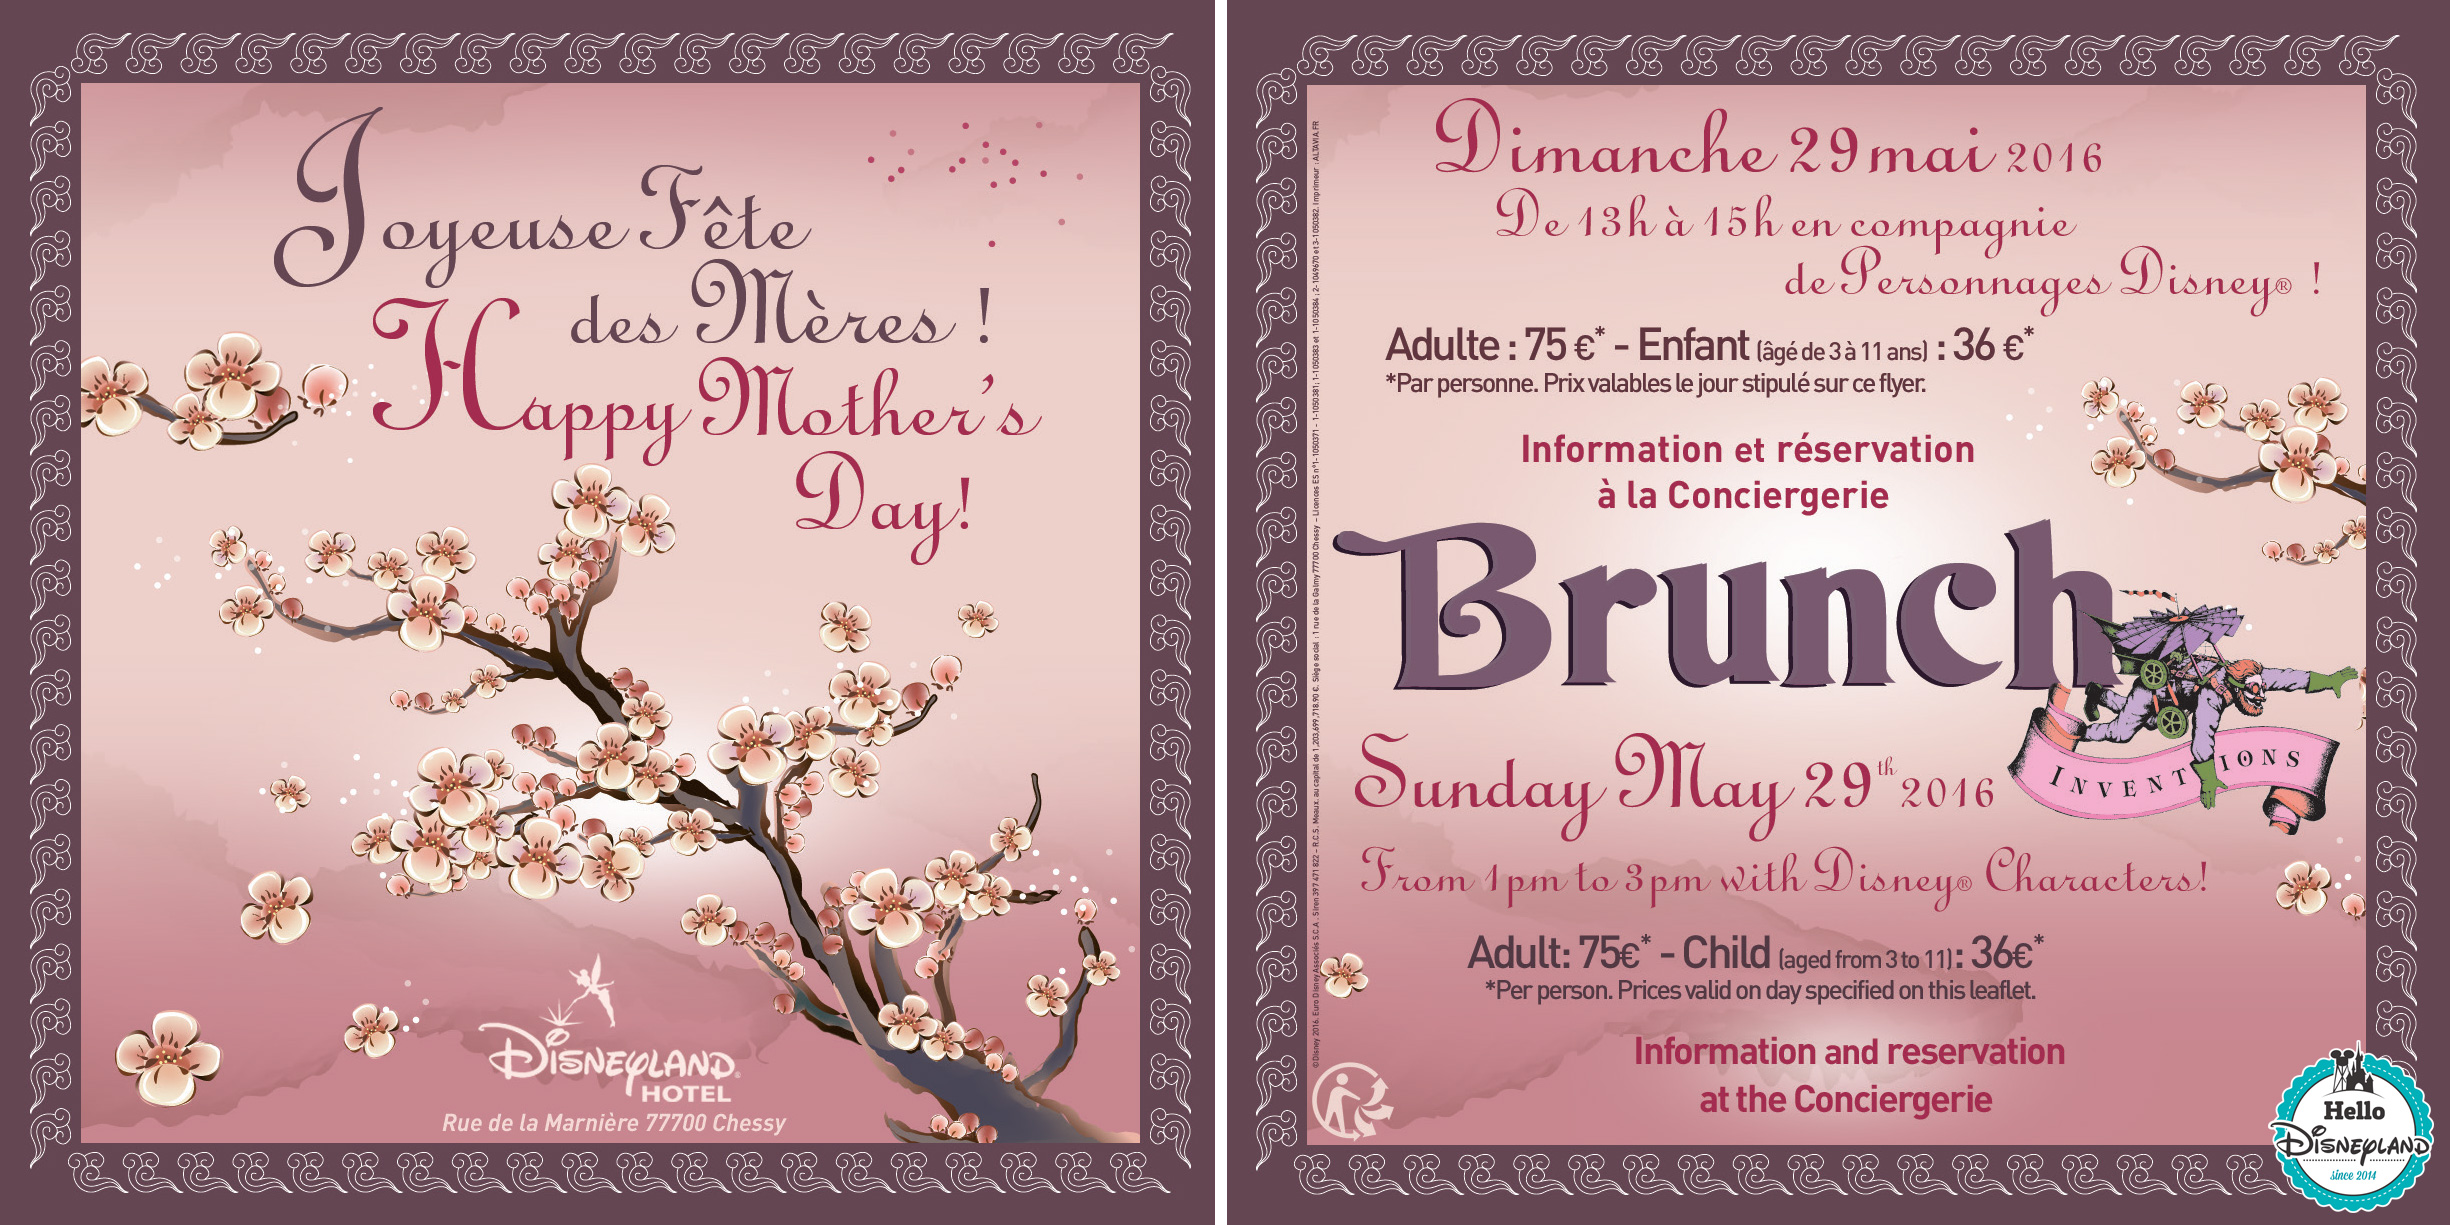 Invitation For Brunch was awesome invitation ideas